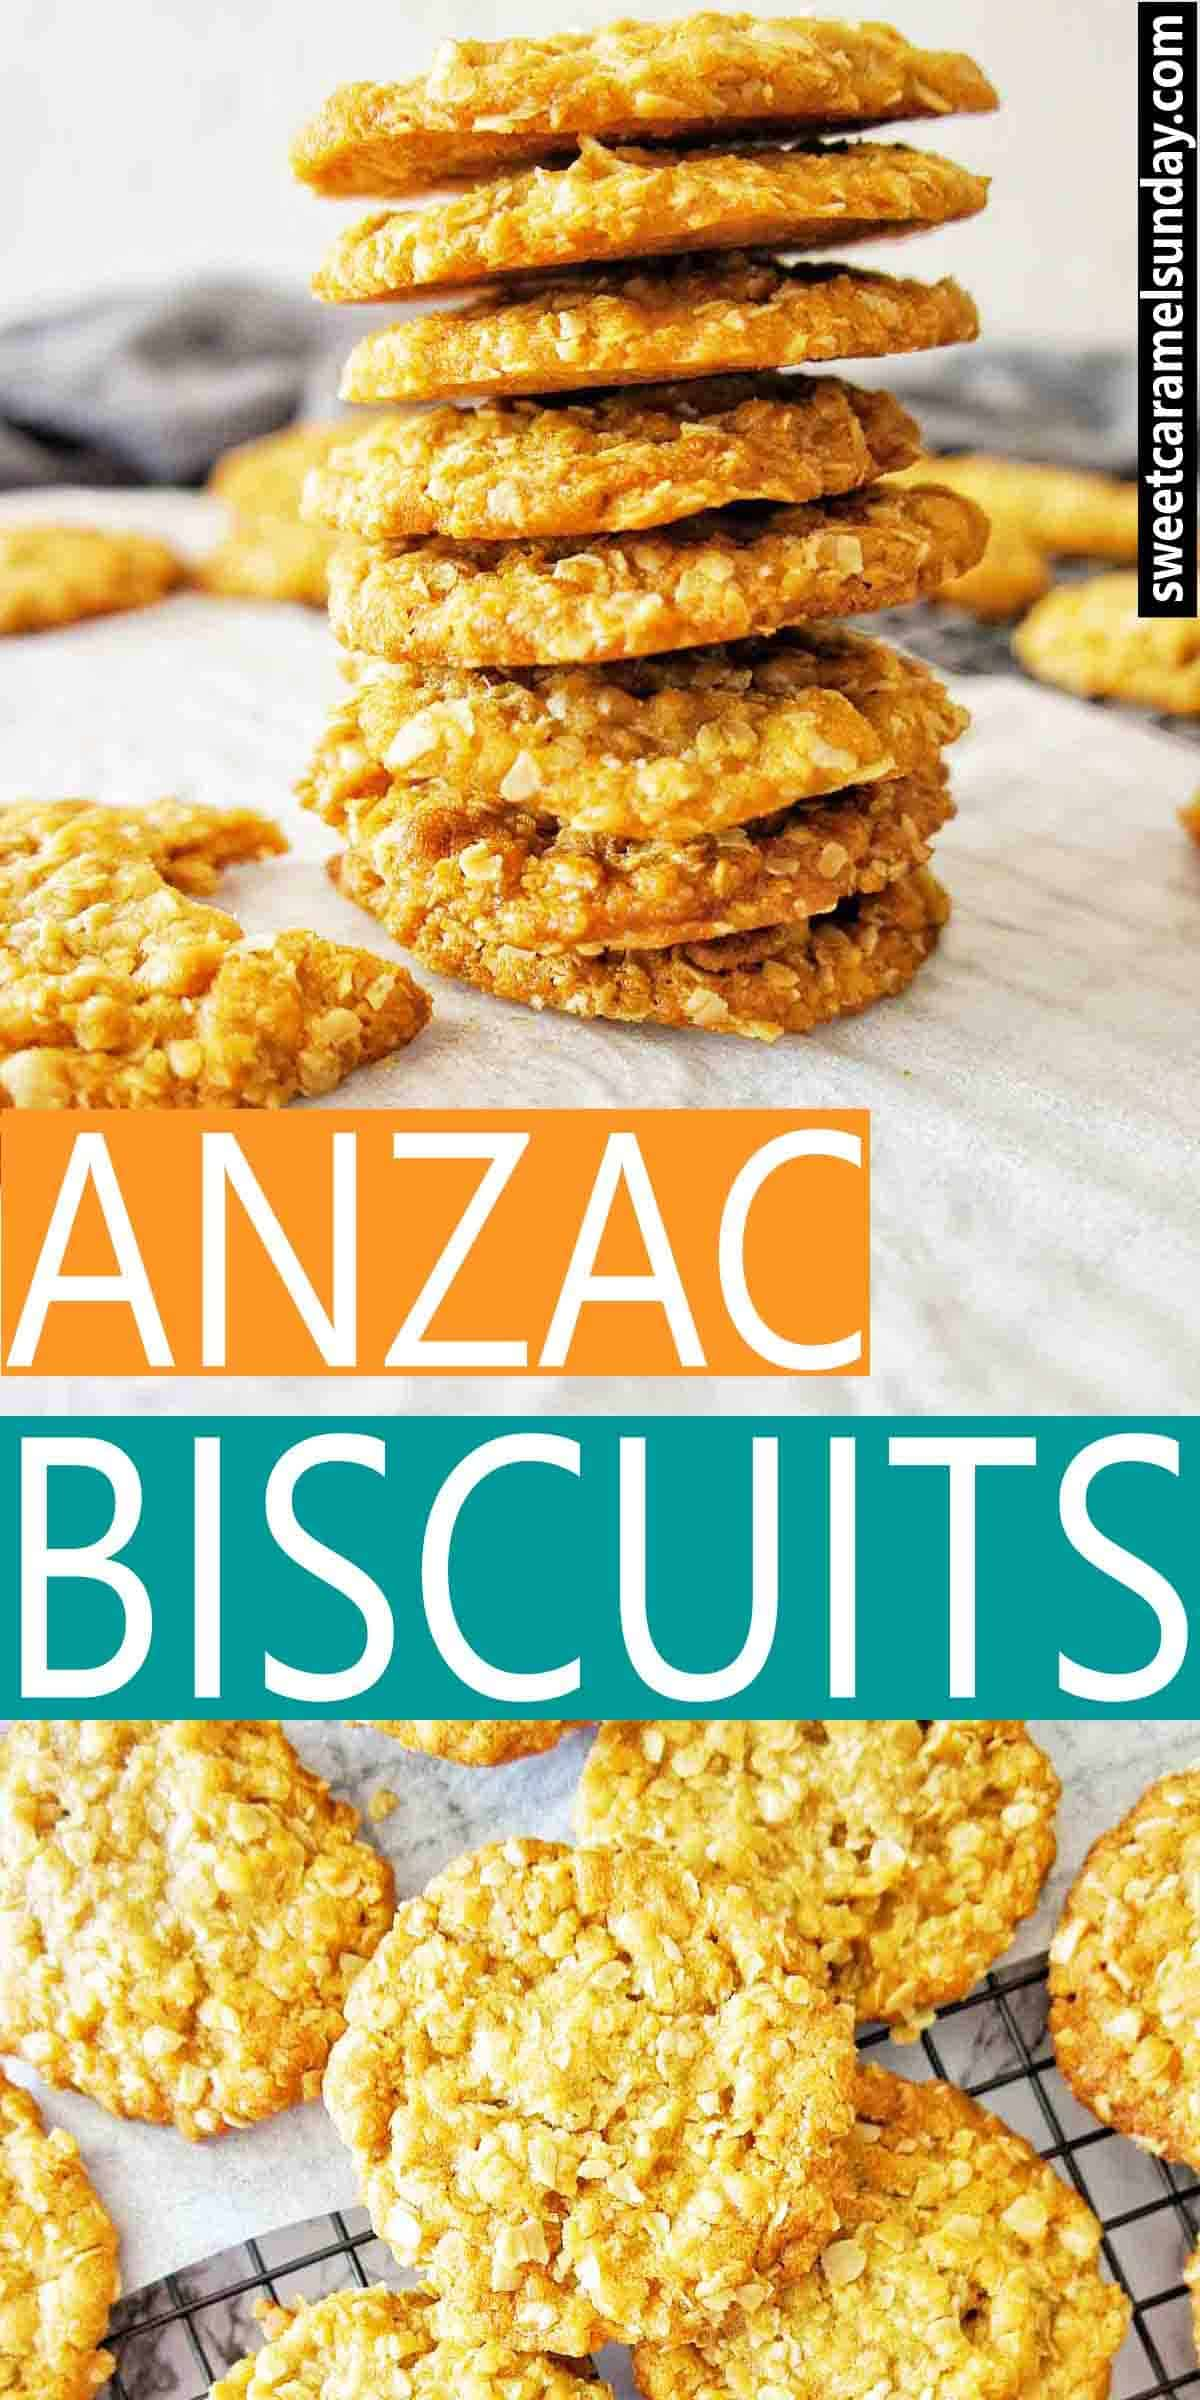 Anzac Biscuits with text overlay